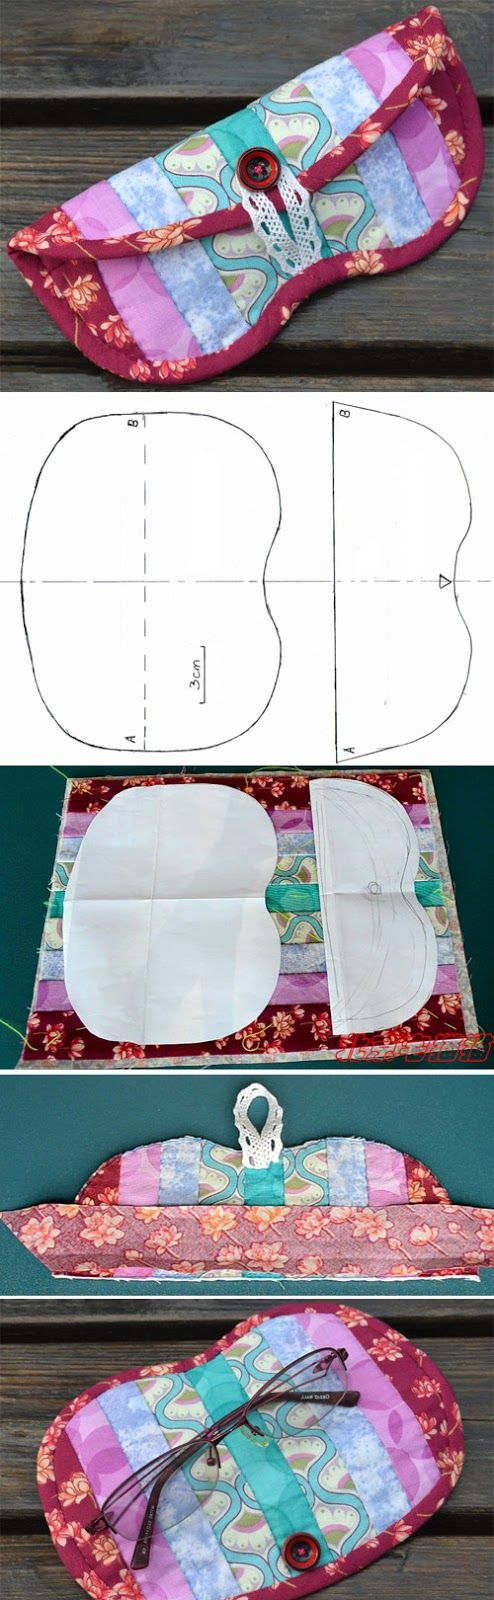 Patchwork glasses case, quilted, handmade, eyeglass case. Step by step photo tutorial. http://www.handmadiya.com/2016/05/glasses-case-tutorial.html Más